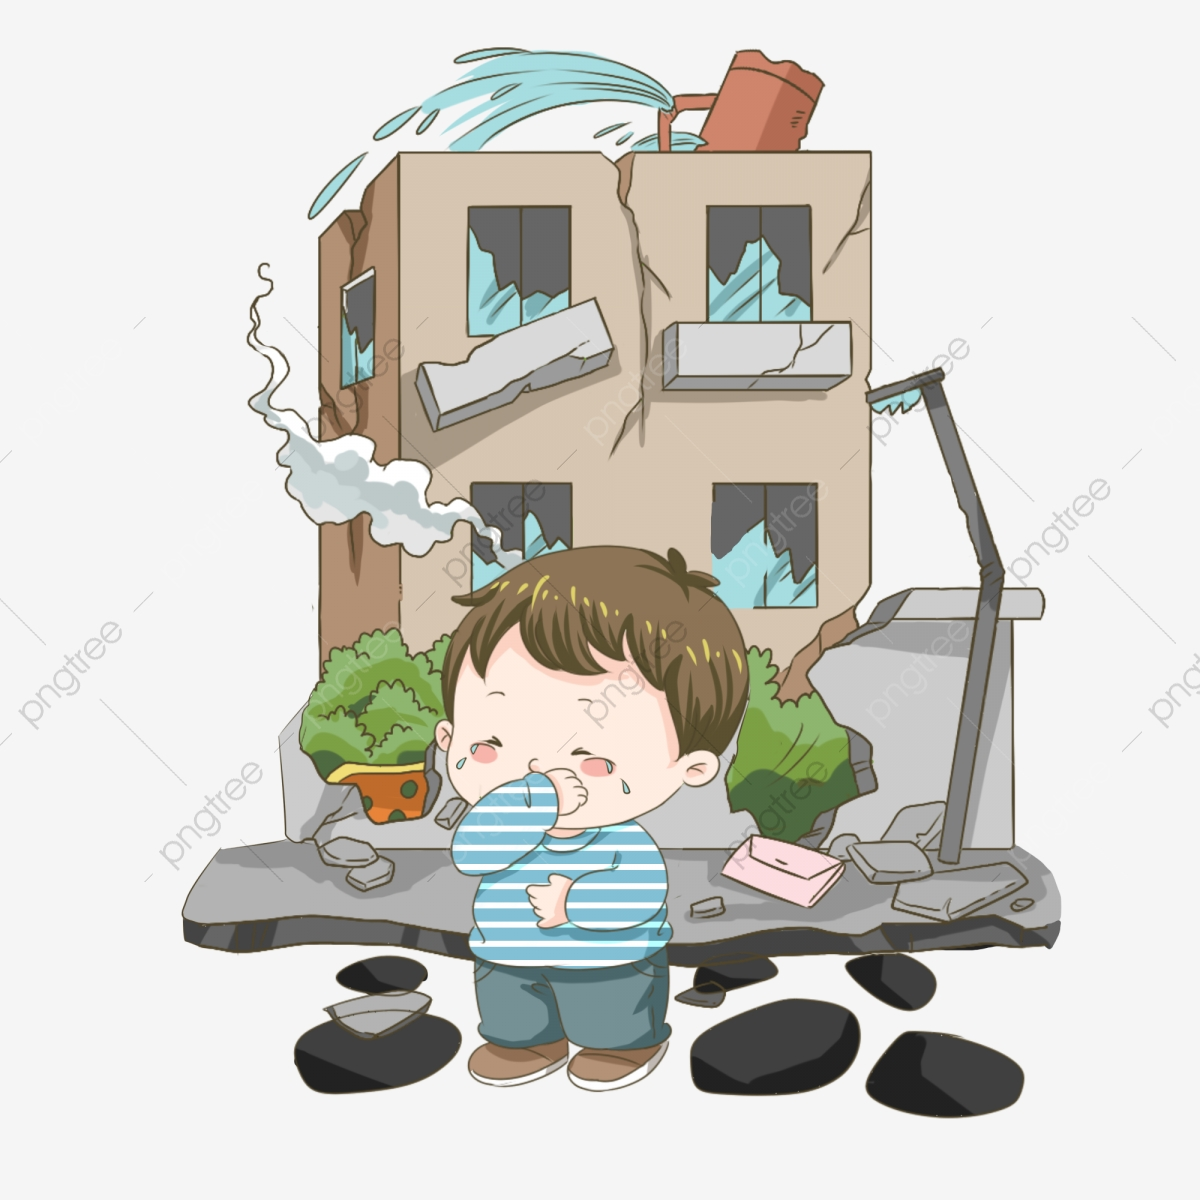 Earthquake clipart collapse. Disaster house panic